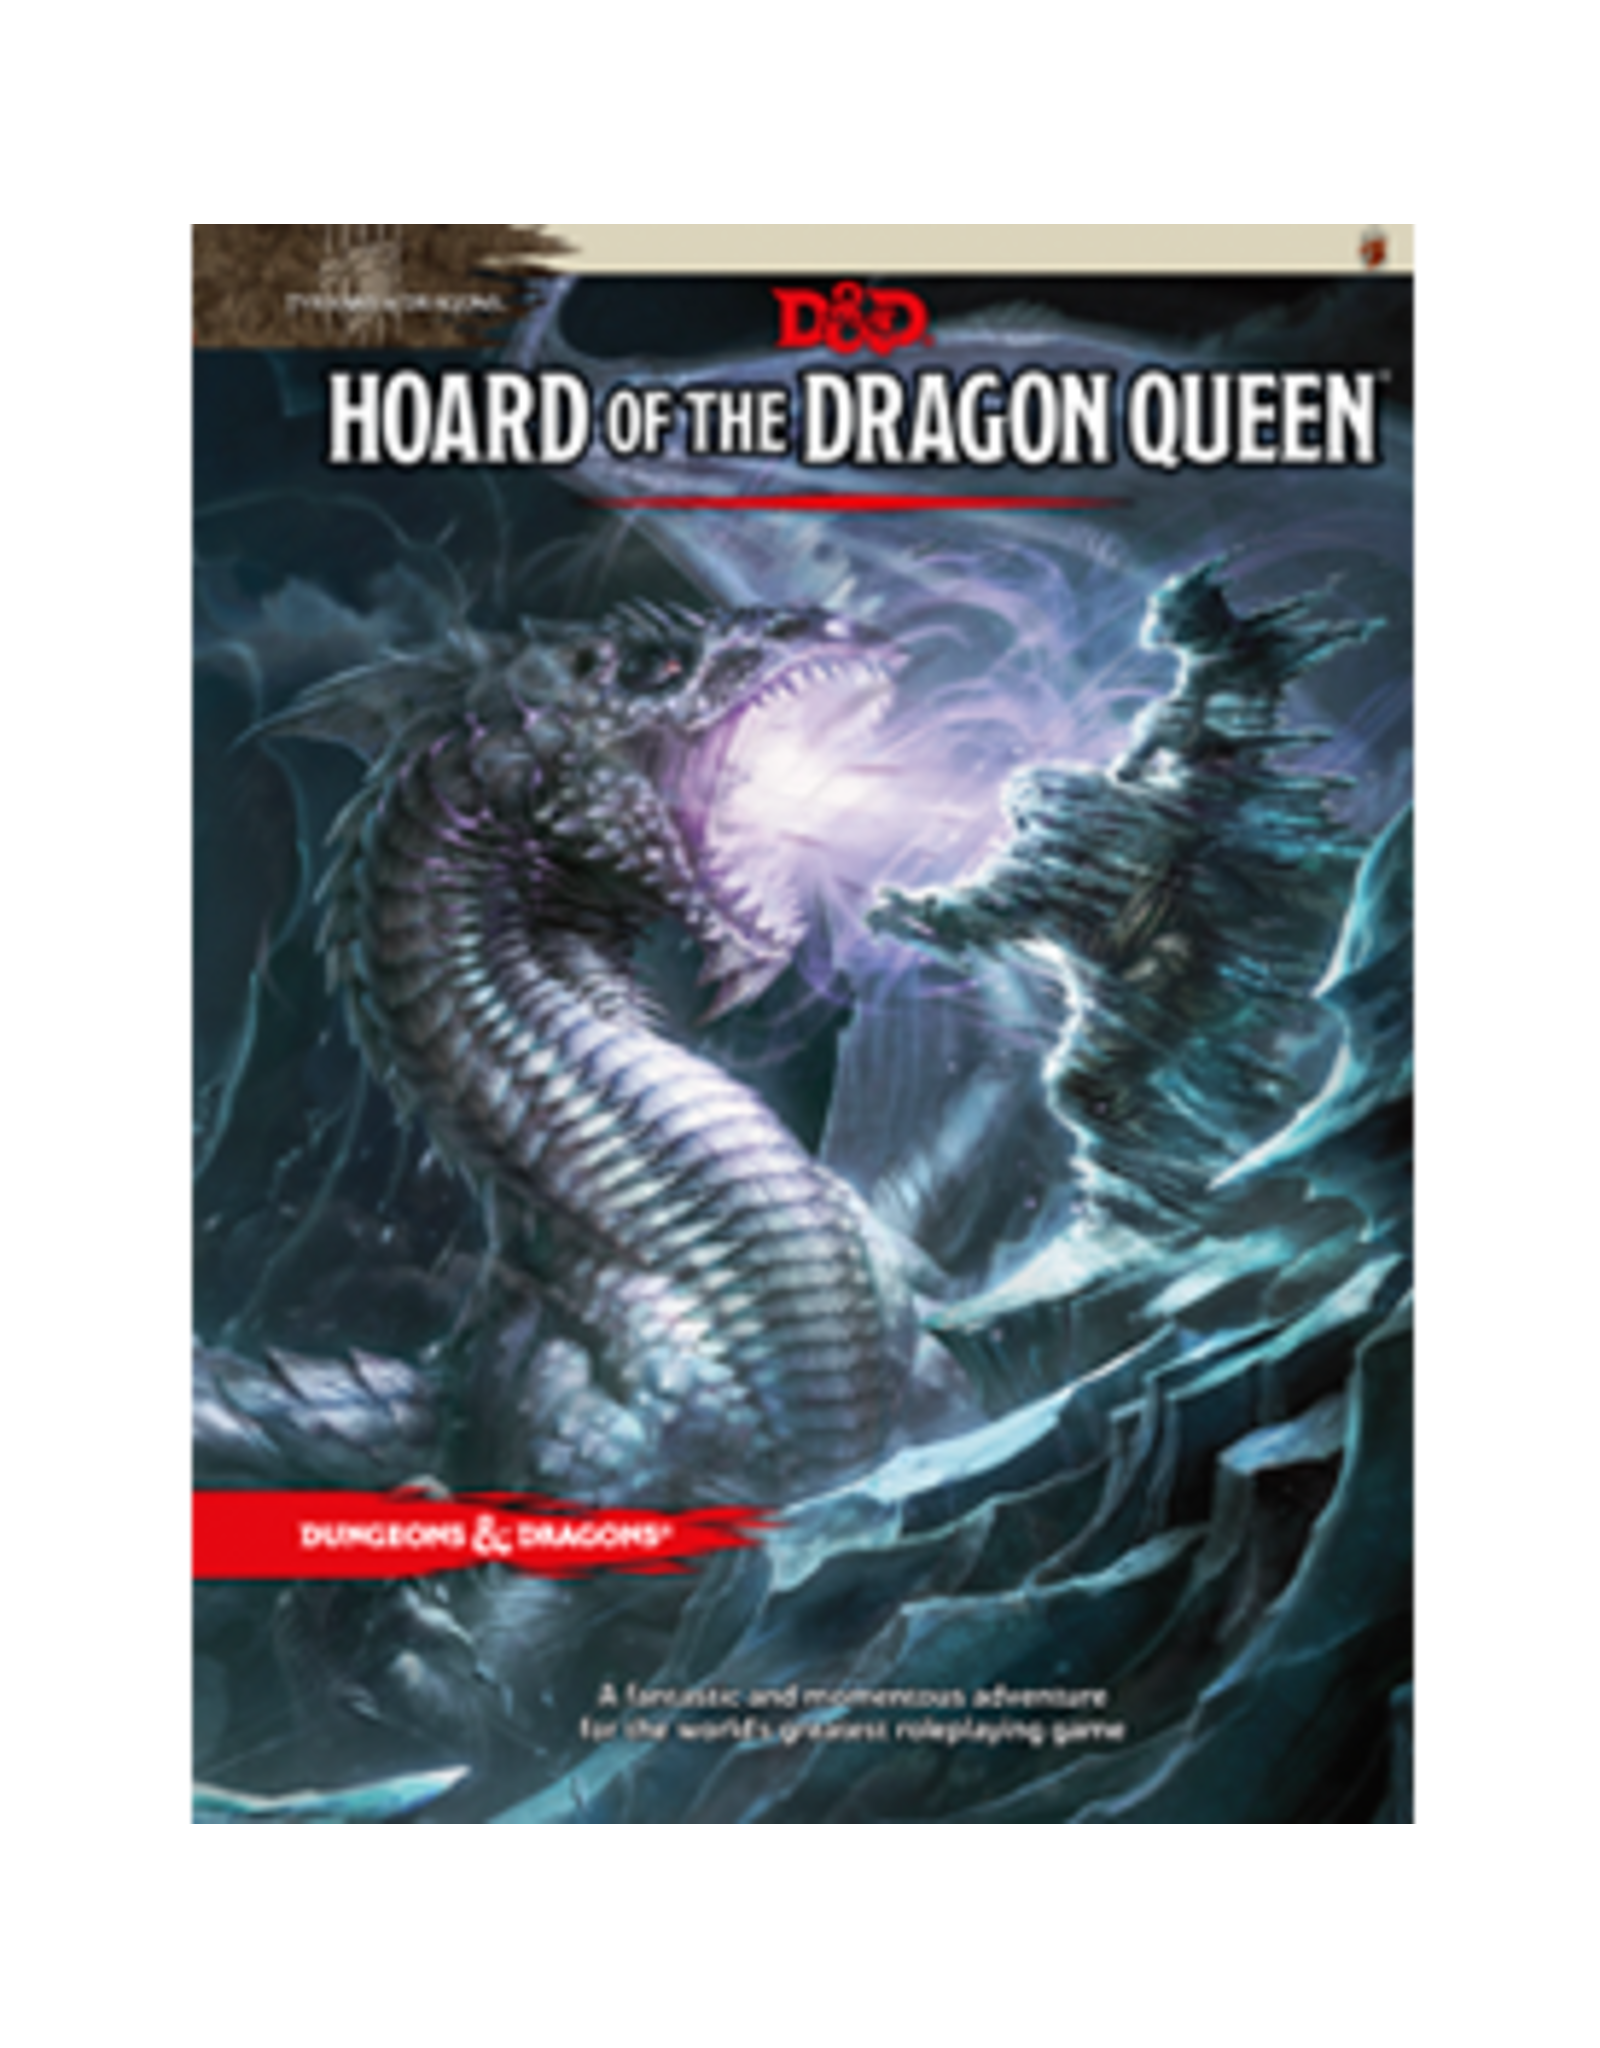 DnD D&D Horde of the Dragon Queen 5th